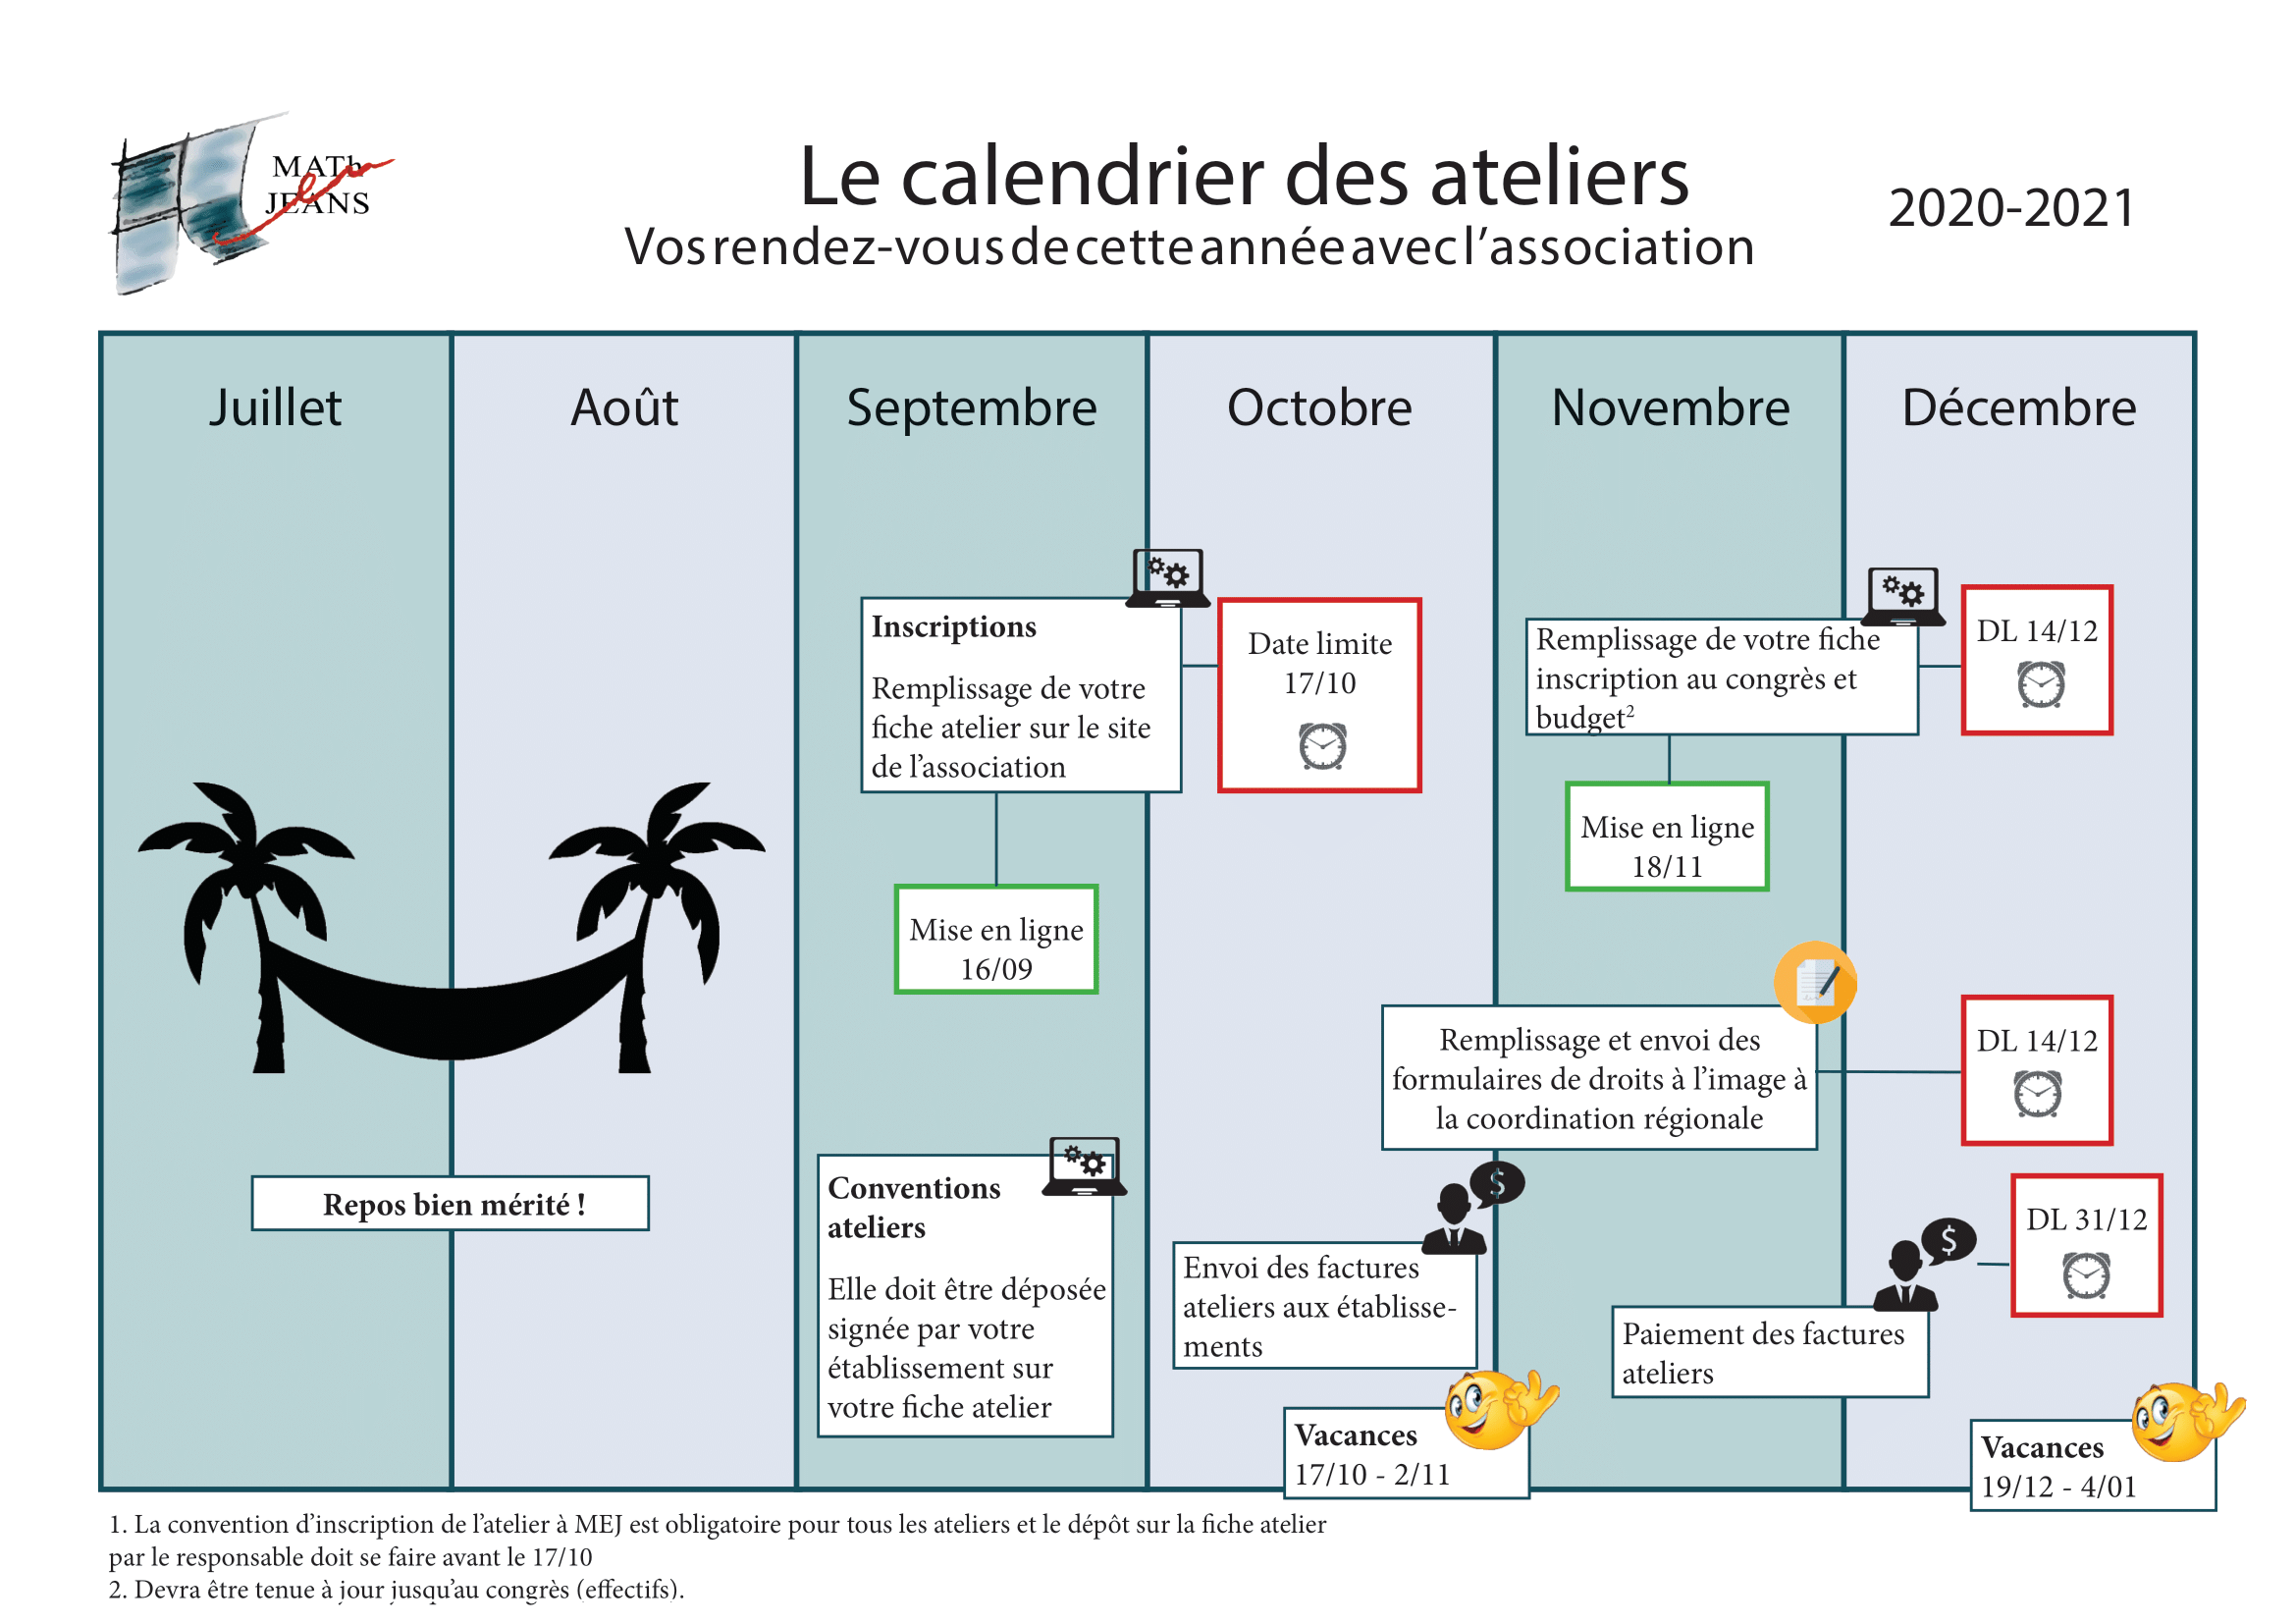 Calendrier ateliers Grand Ouest 2020/2021